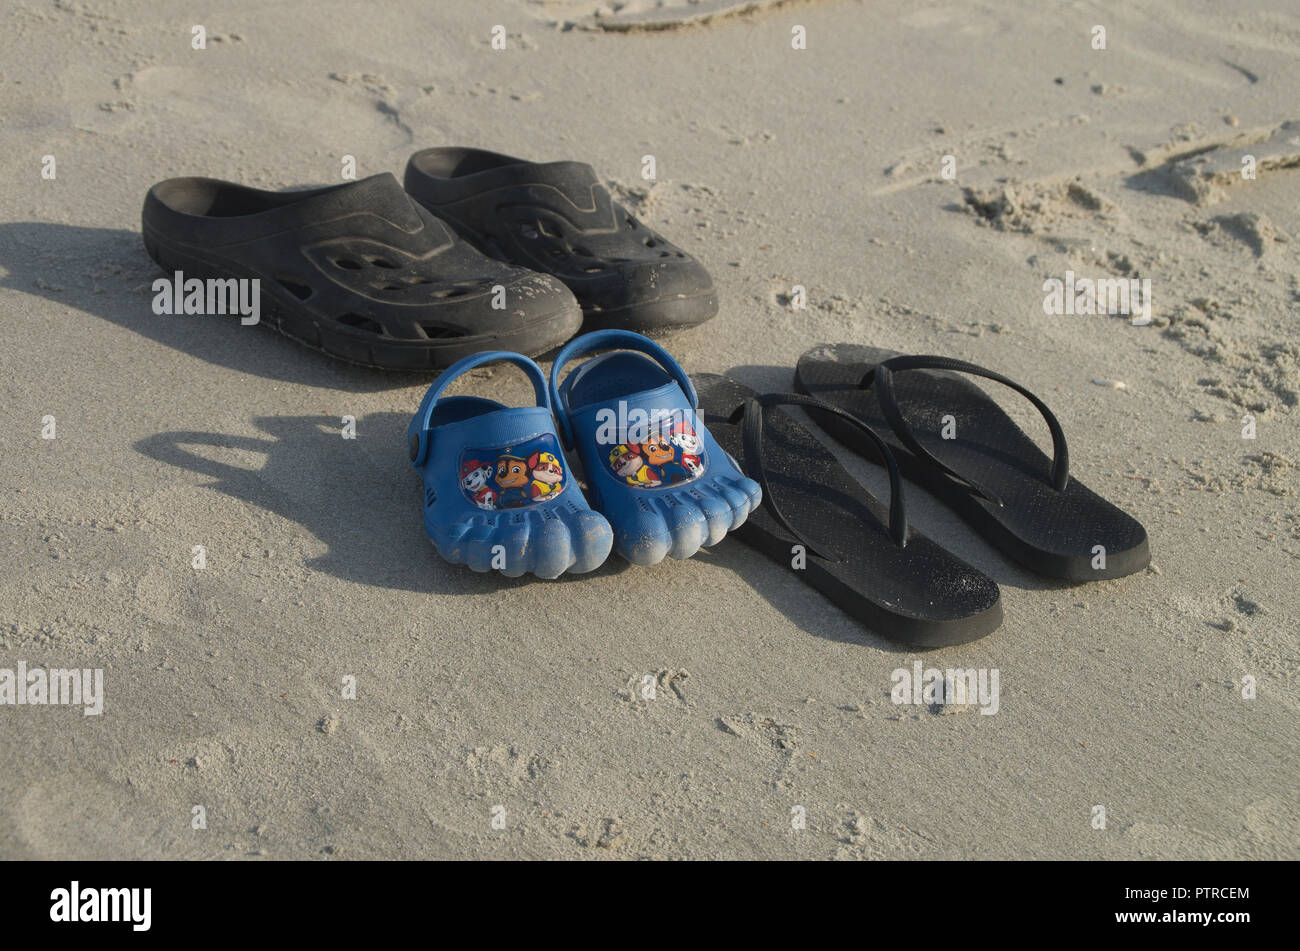 A group of shoes rests on the sand for a family to return in Myrtle Beach South Carolina - Stock Image